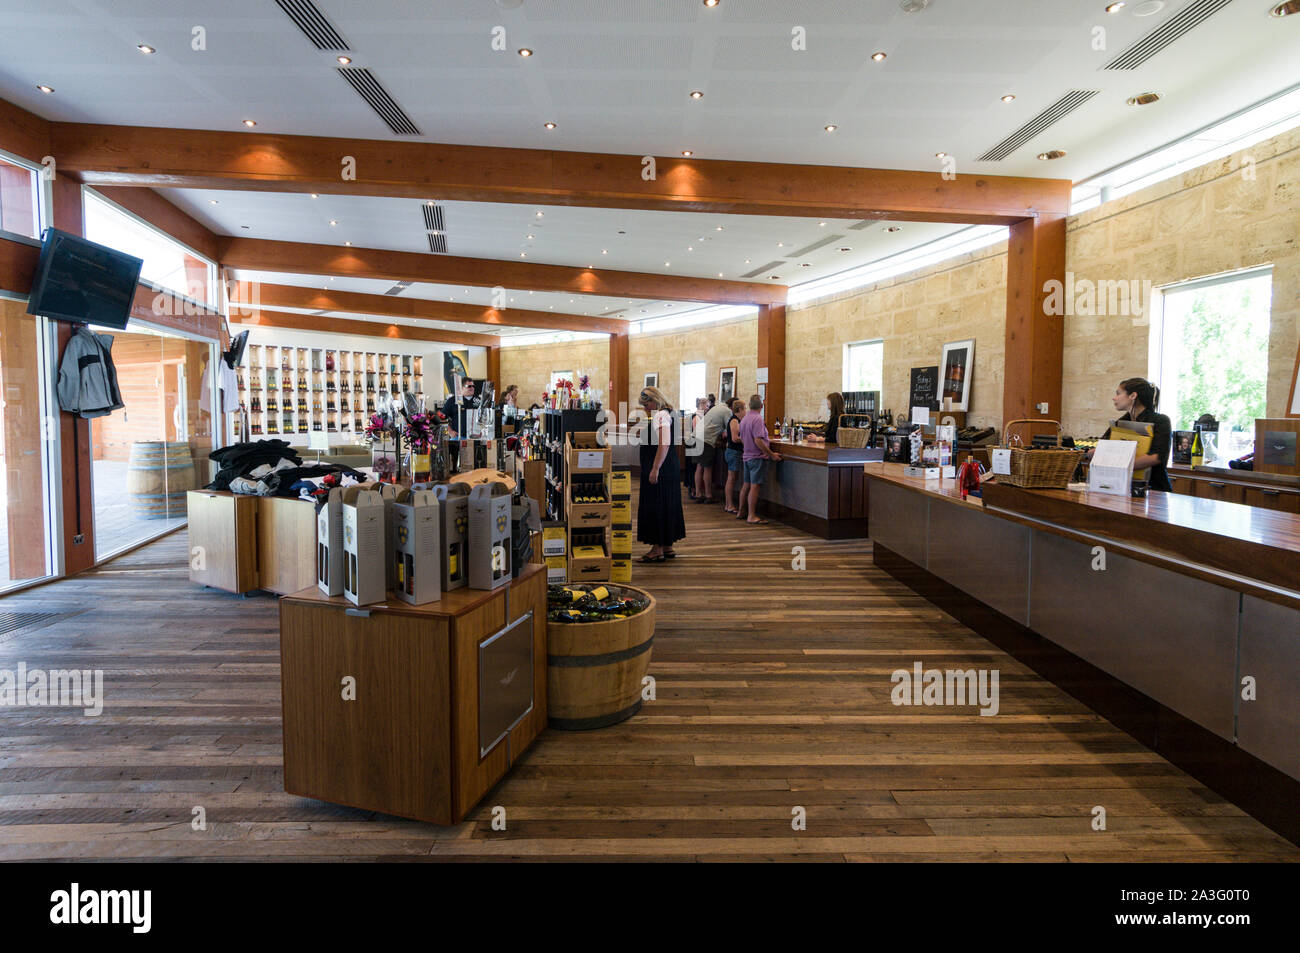 Bottles of wines on sale and wine tasting at the Wolf Blass winery visitors centre in the Barossa Valley wine region in South Australia.   There are a Stock Photo